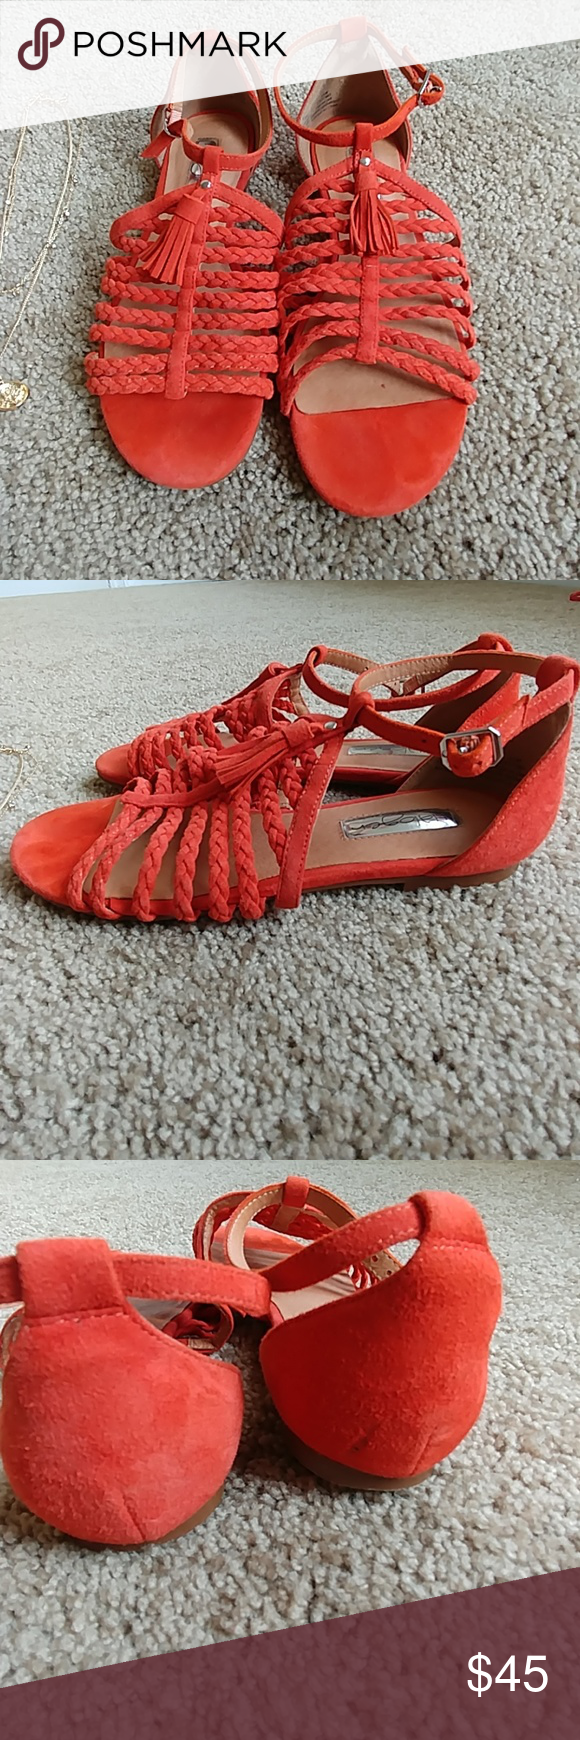 16ae3a716718 Orange Jolie Halogen sandals Orange suede material. Cute tassel detail and  braided cage straps. Hardly worn and in excellent condition. True to size.